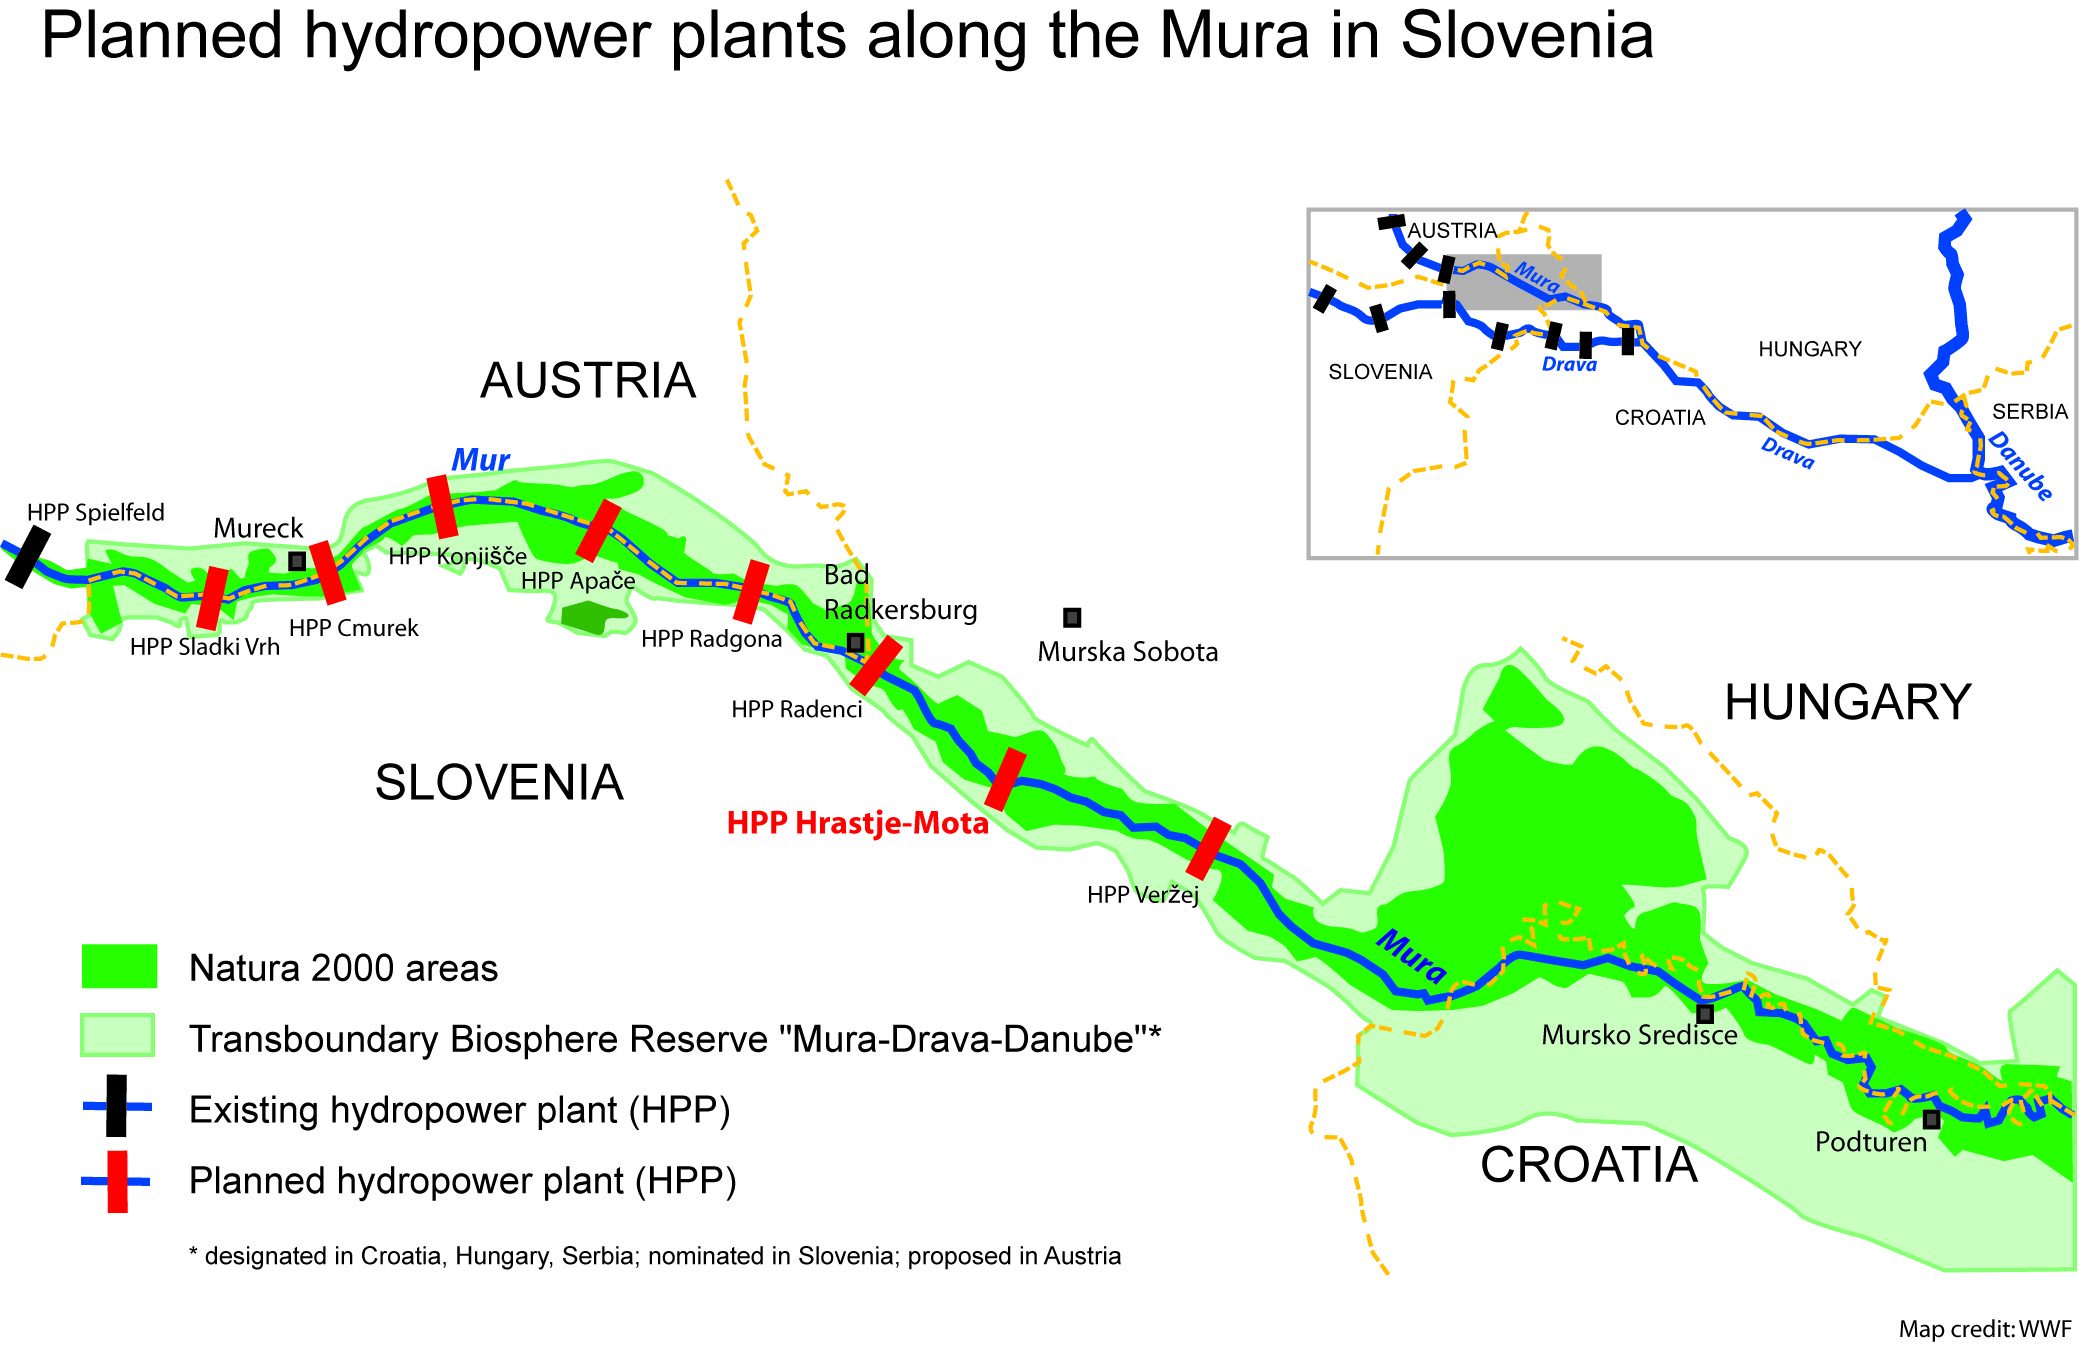 Planned hydropower plants along the Mura © WWF